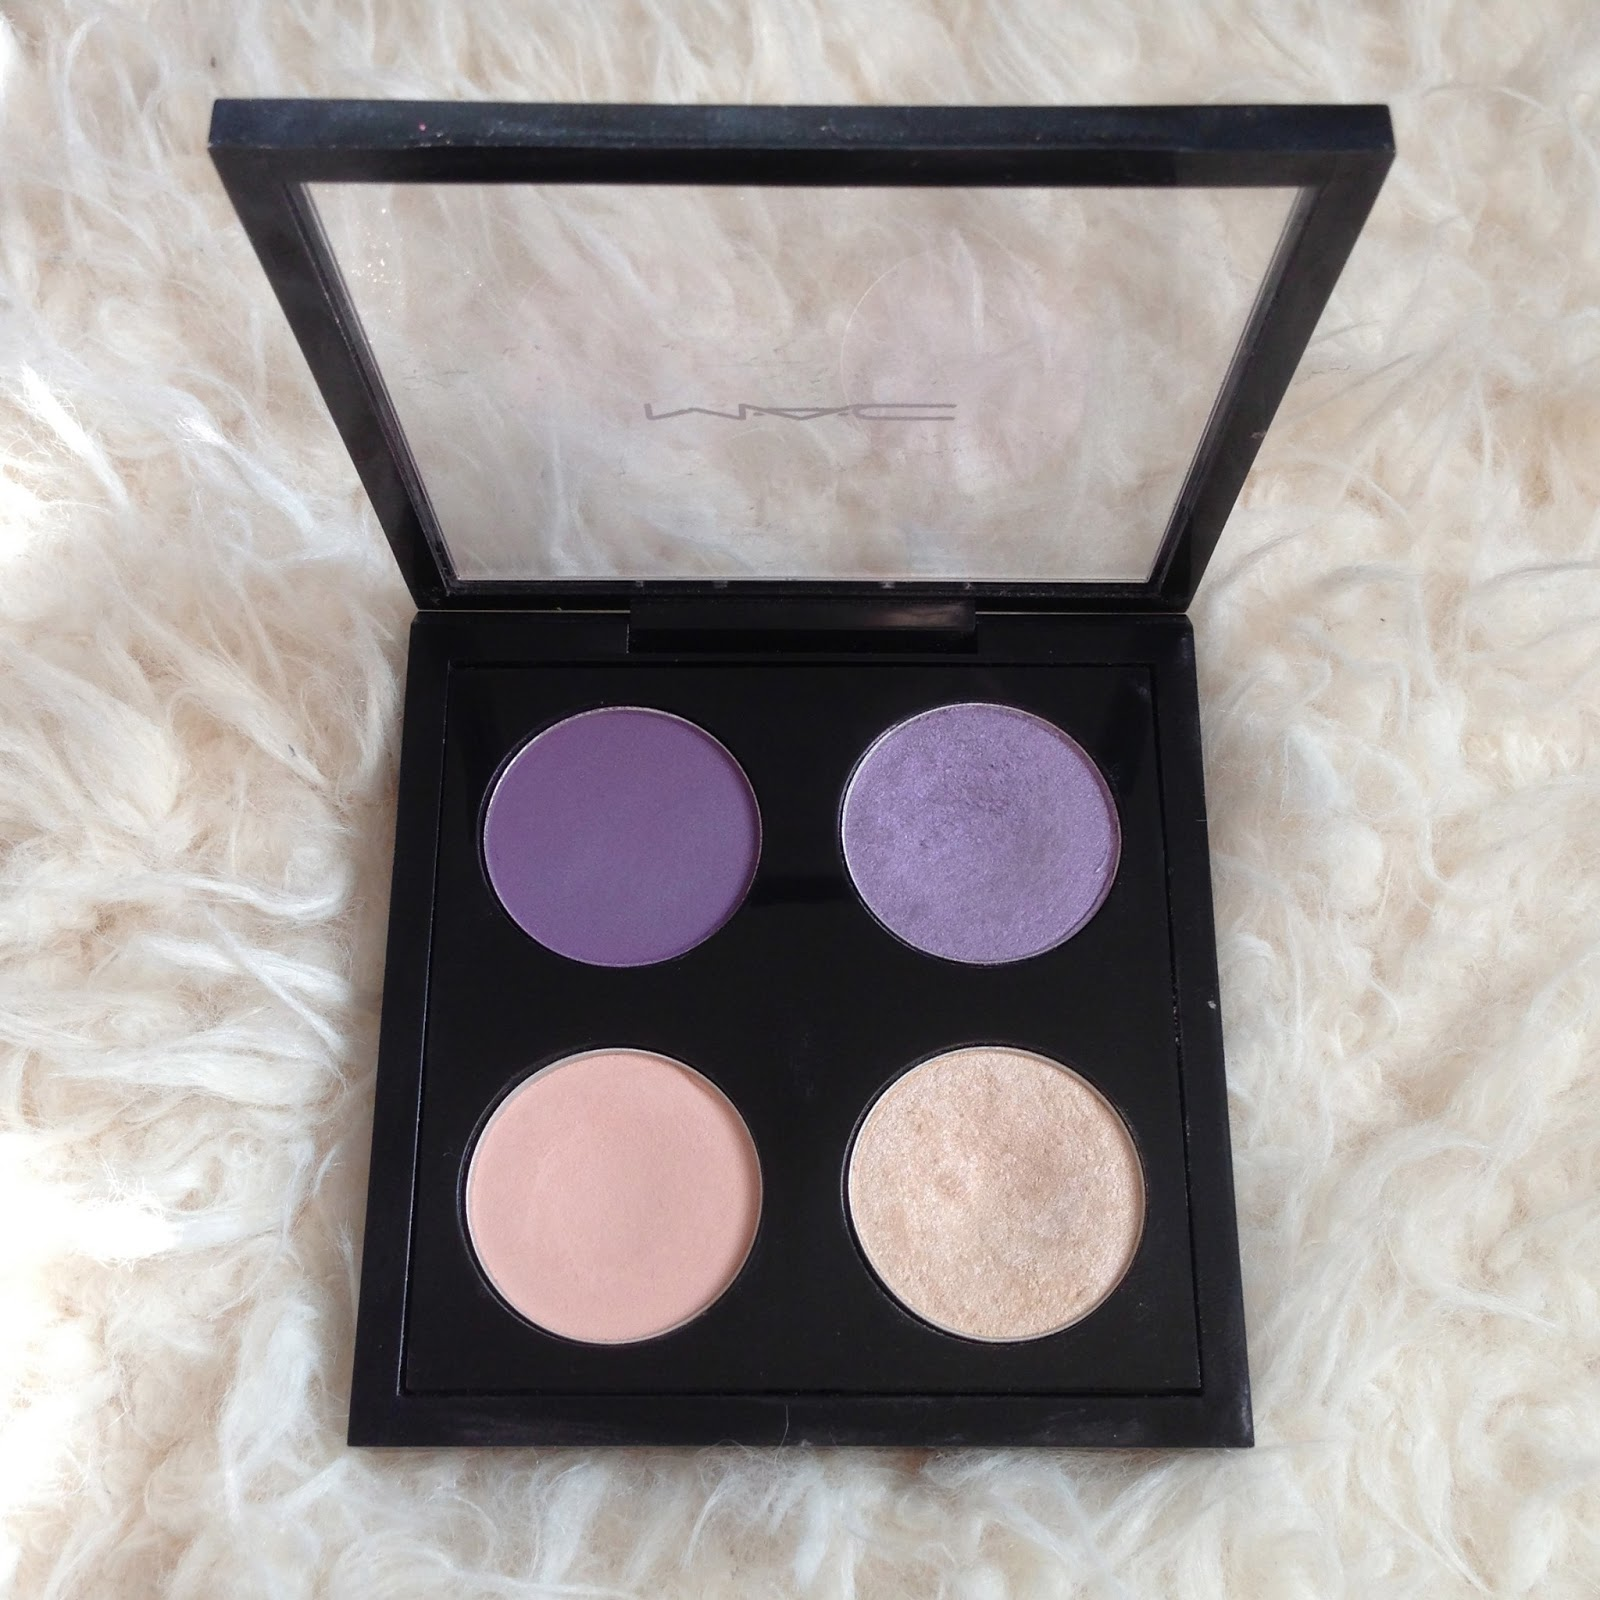 Mac eyeshadow palette purples shimmers and creams inthefrow mac eyeshadow palette purples shimmers and creams thecheapjerseys Image collections